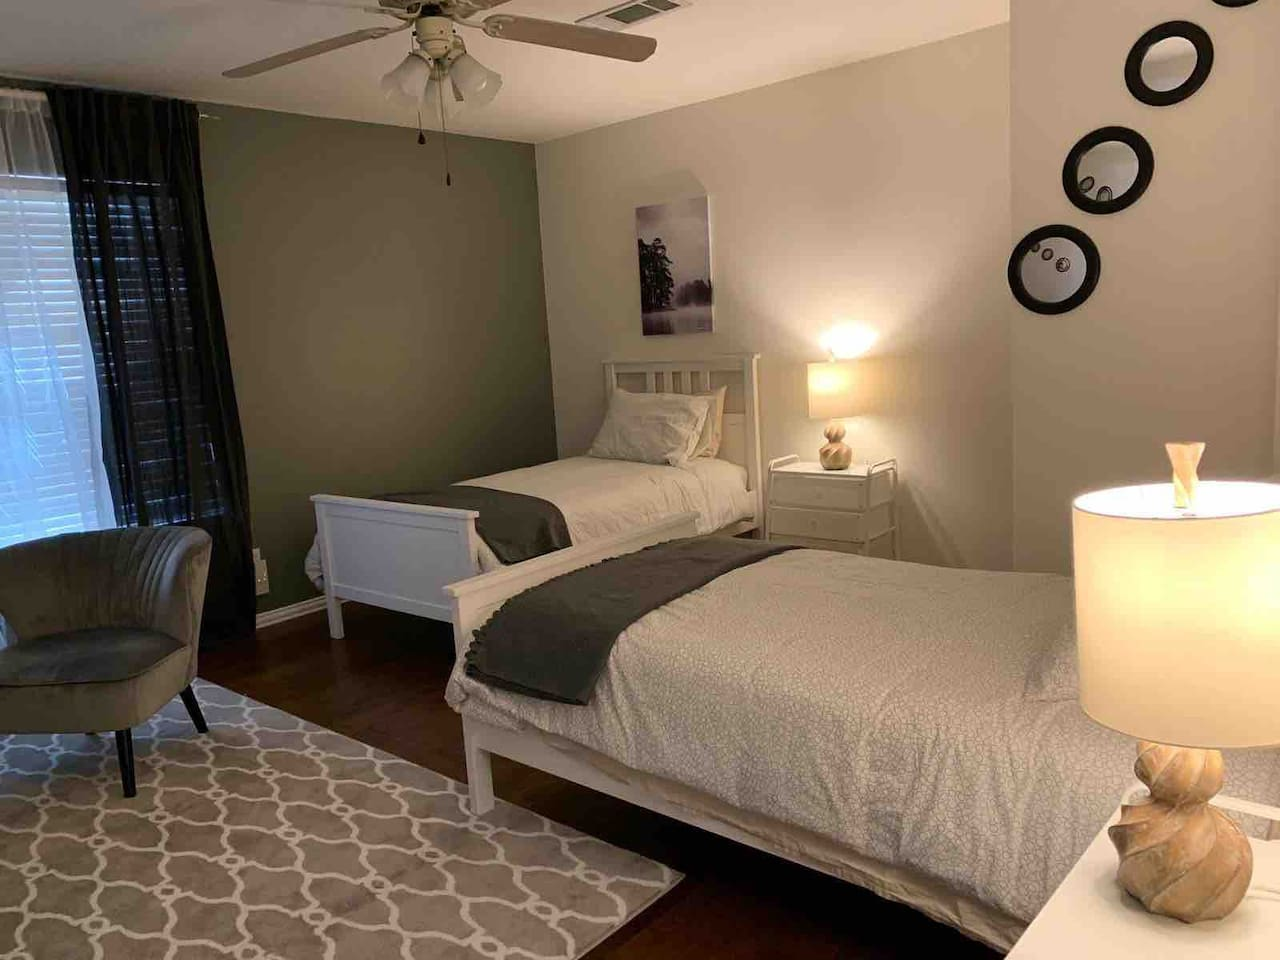 Bedroom 2 - two twin beds